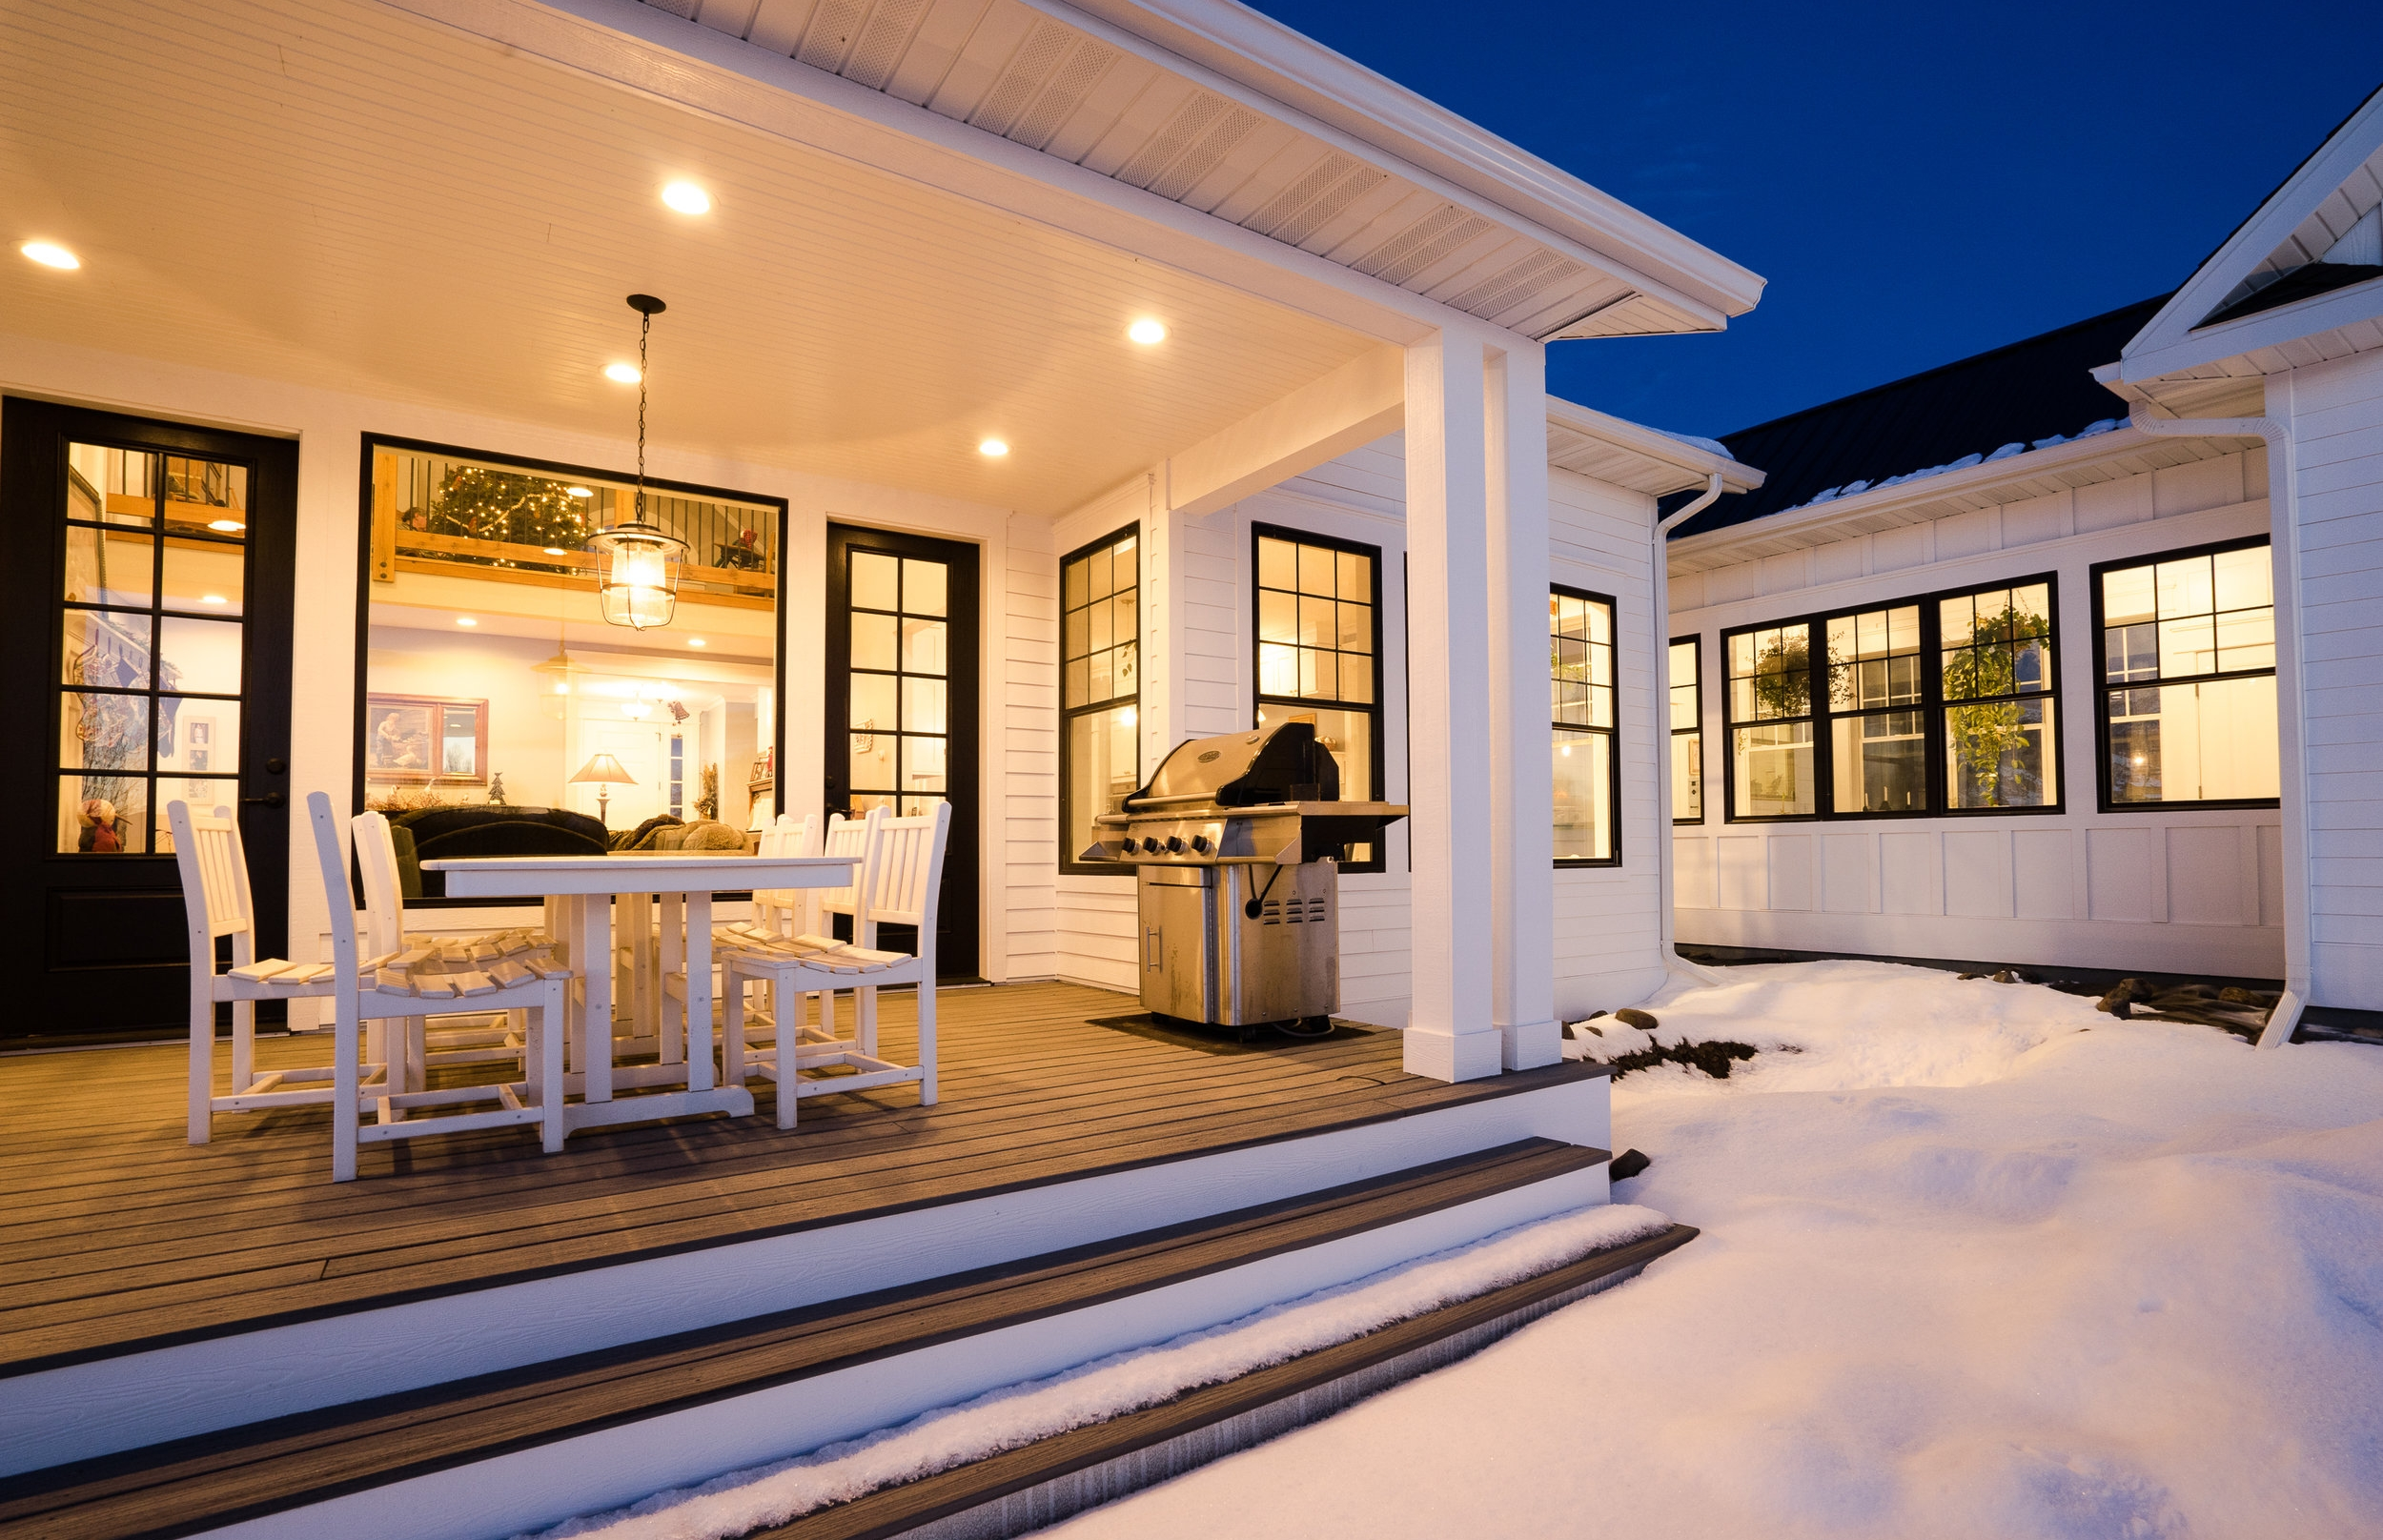 Build your dream home - residence with expansive covered rear porch